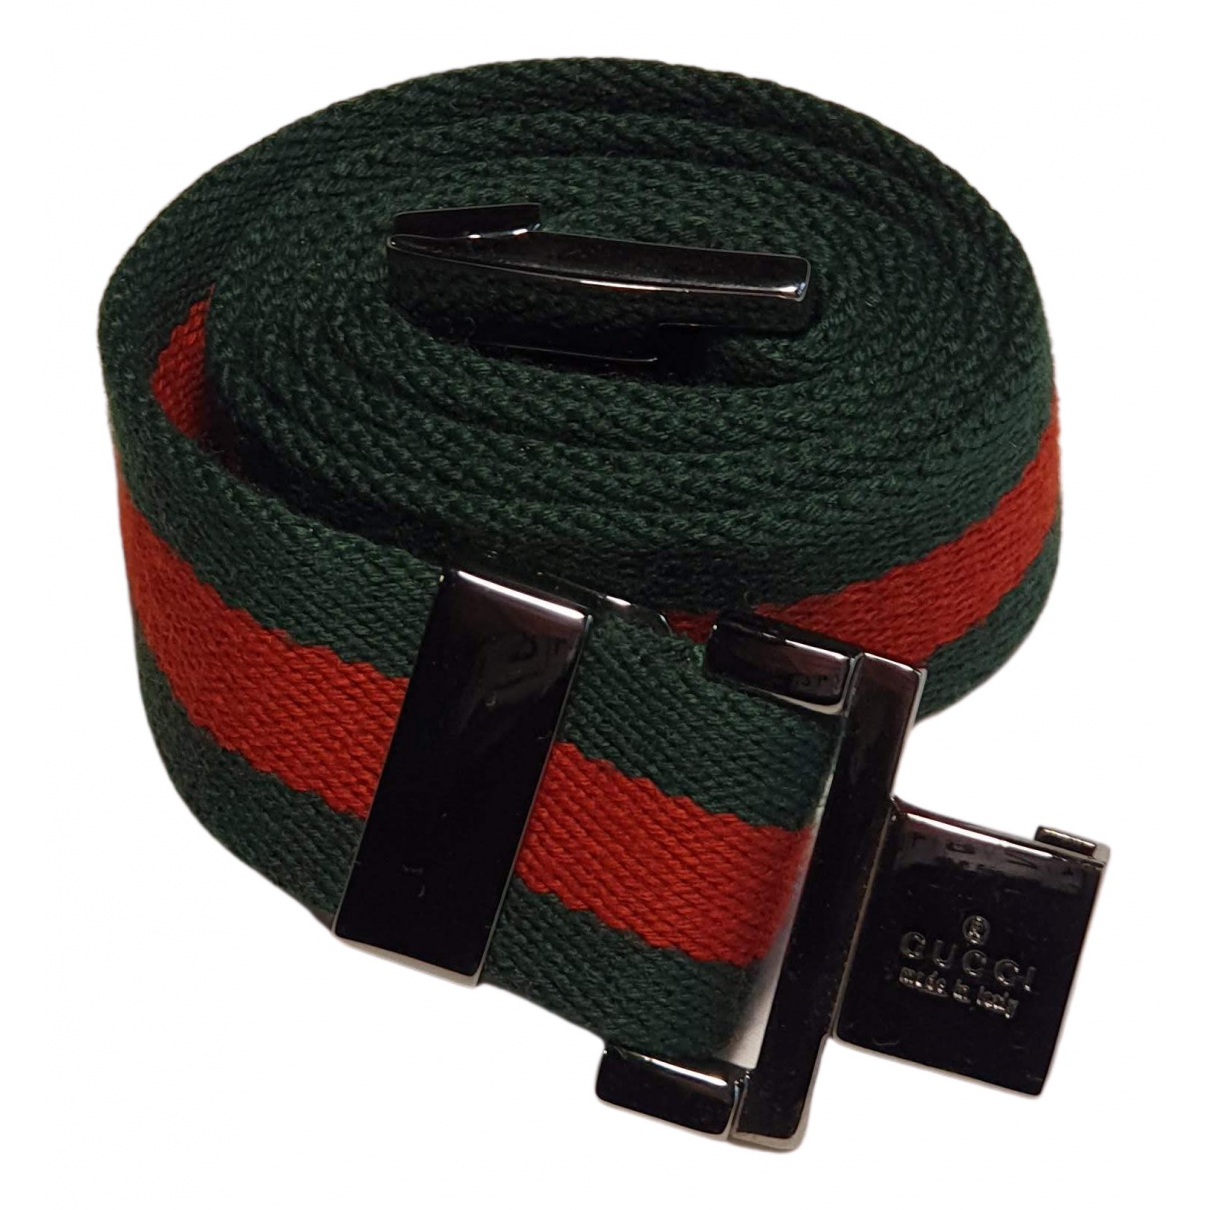 Gucci N Red Cotton belt for Women 90 cm